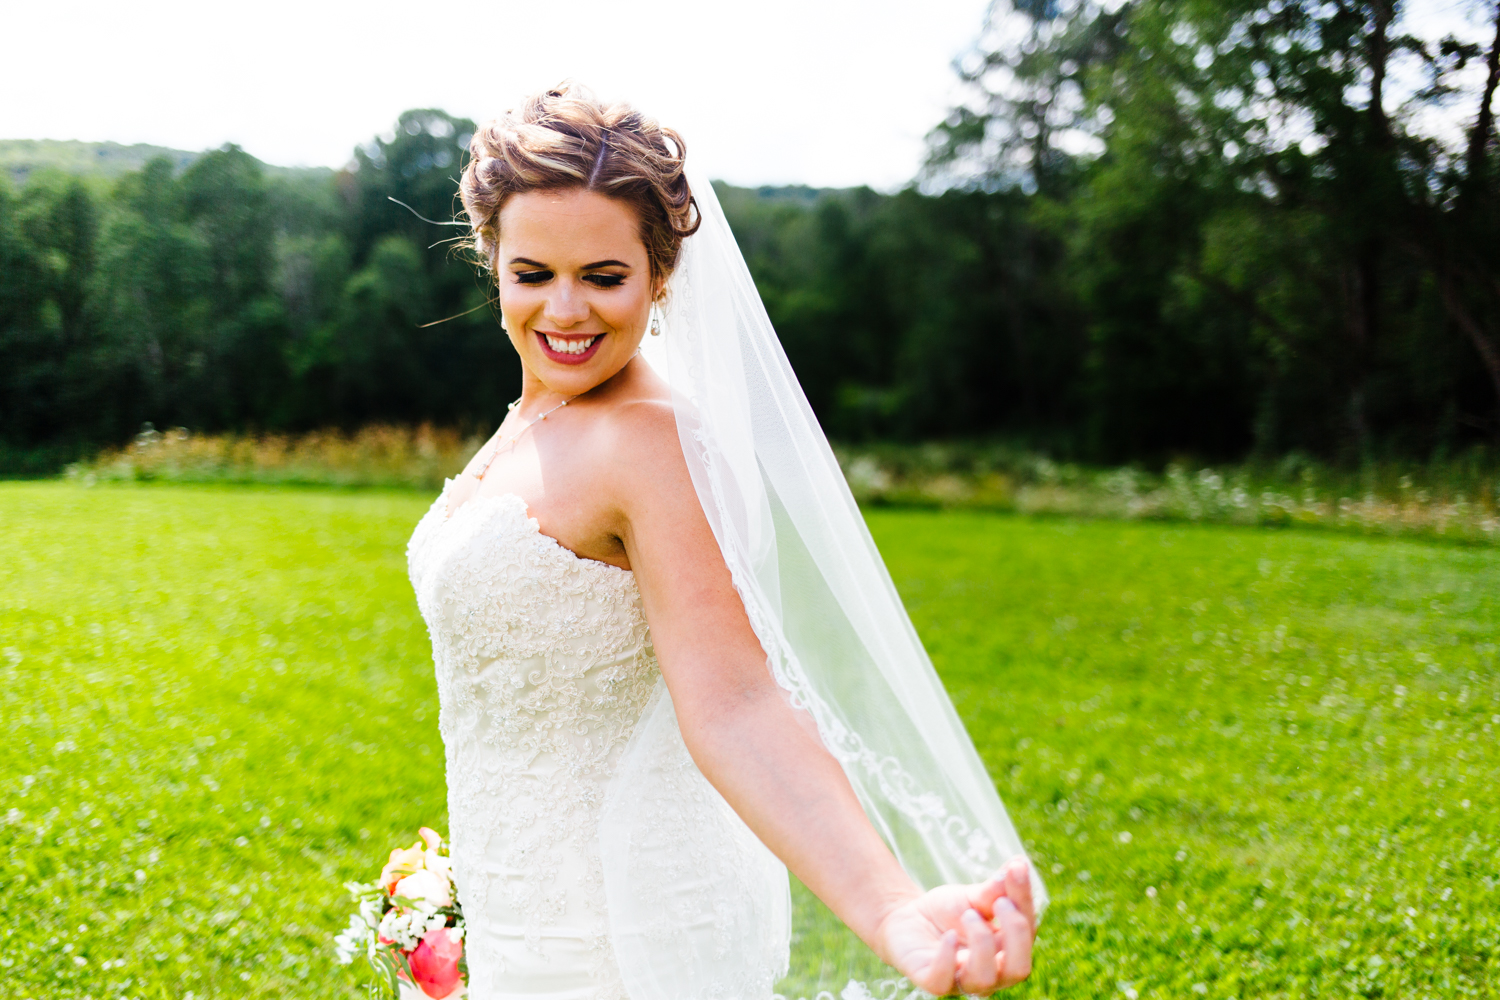 Bride holds out her veil and looks down at it. Trees line the background.